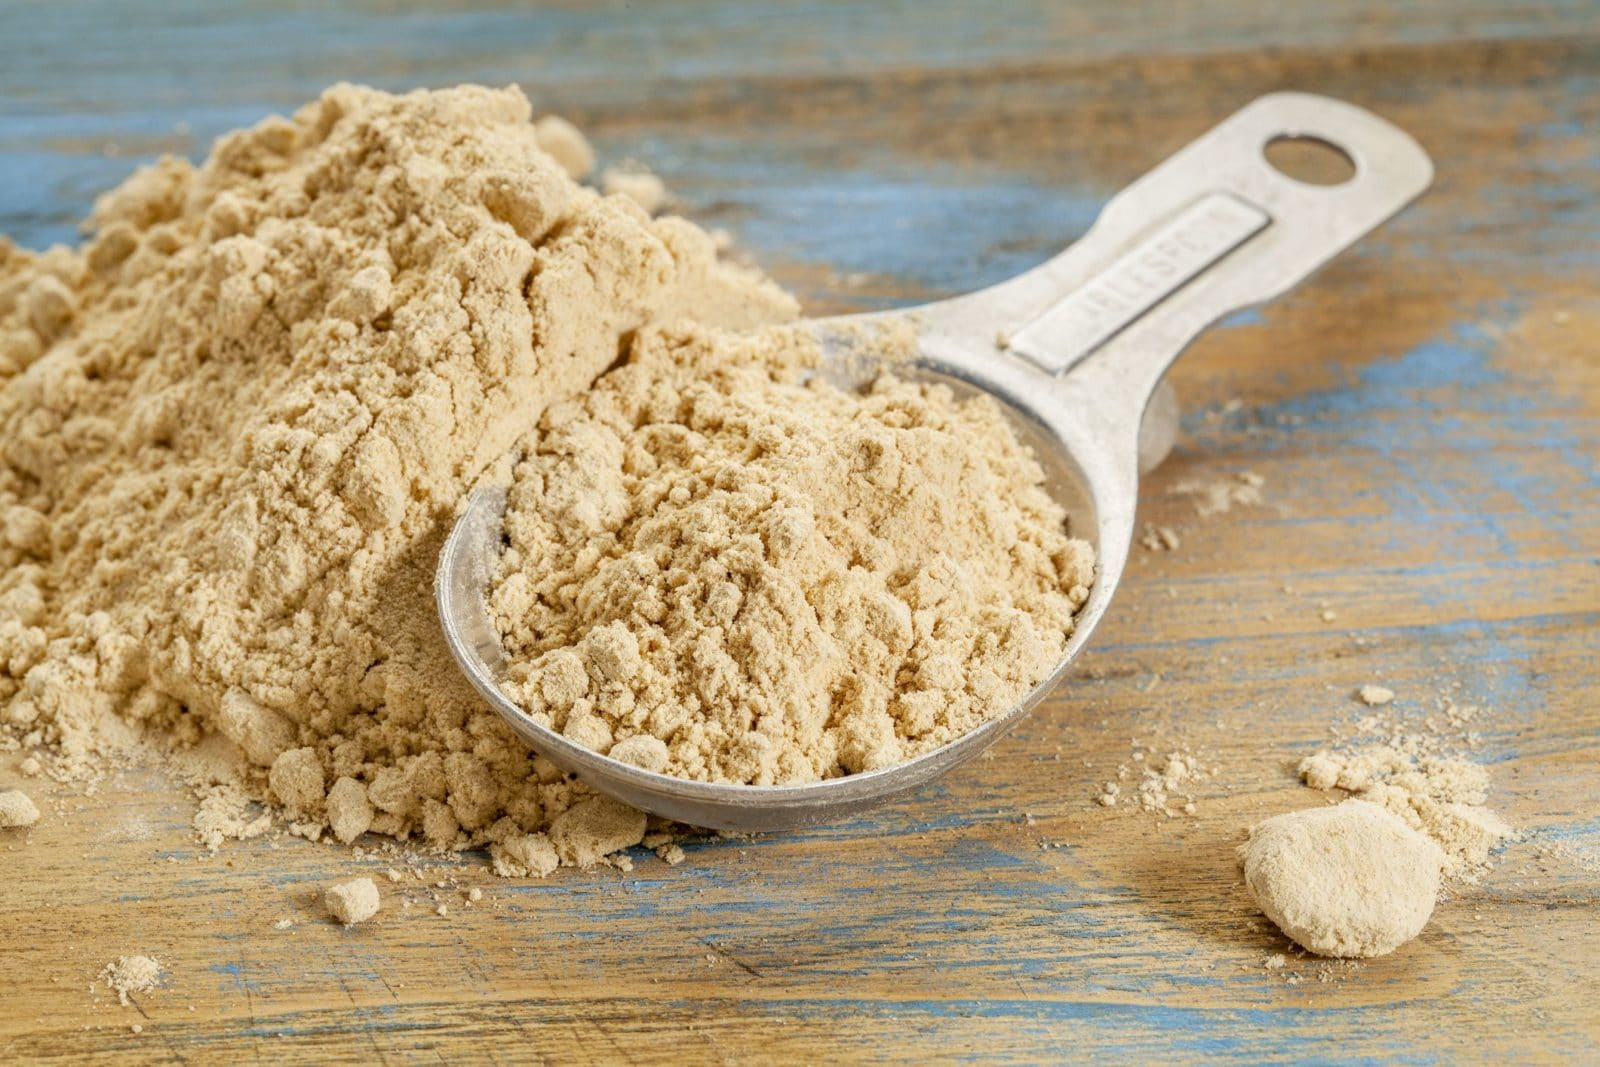 spoon with pile of maca powder | what is maca powder? | goodMix Superfoods